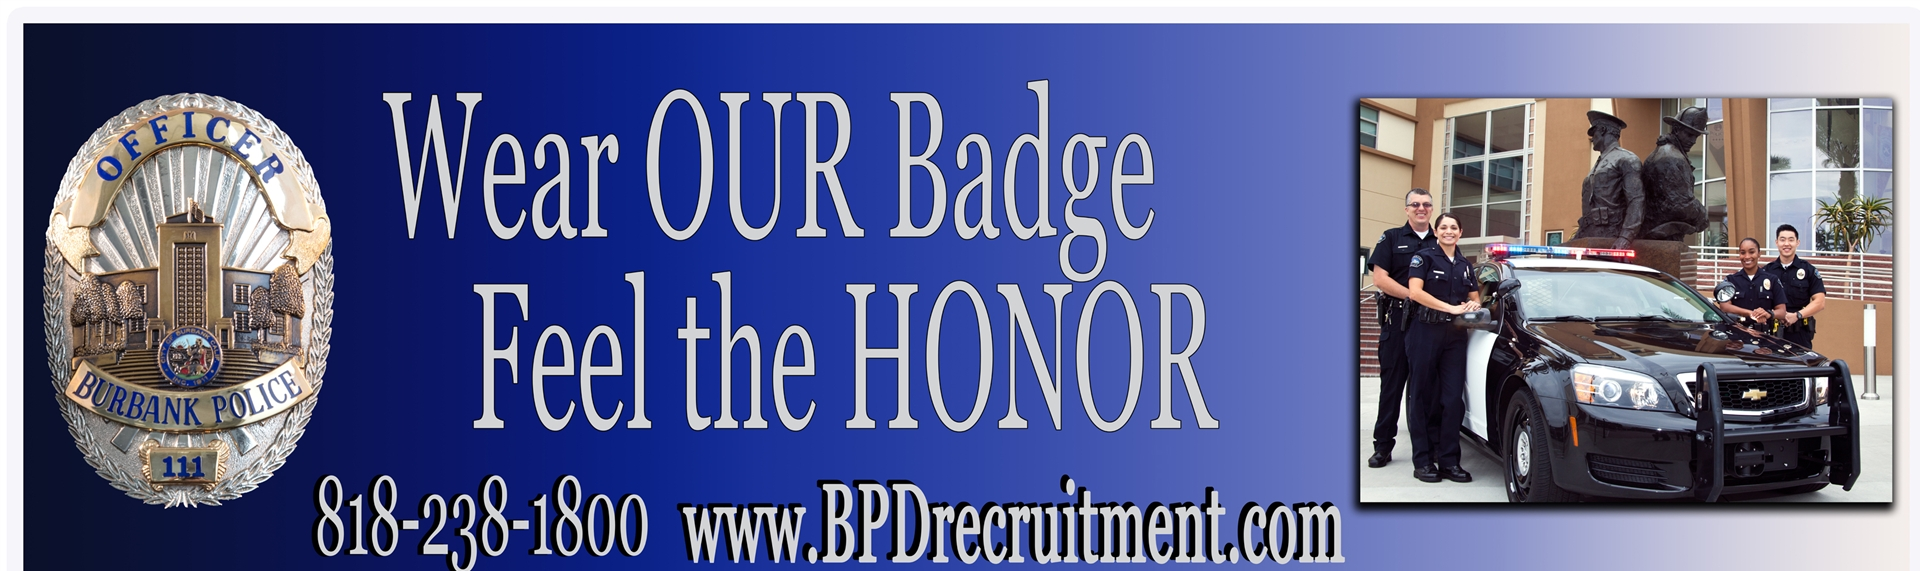 BPD IS LOOKING FOR POLICE RECRUITS - APPLY NOW! - 11-10-14 THROUGH 01-02-15